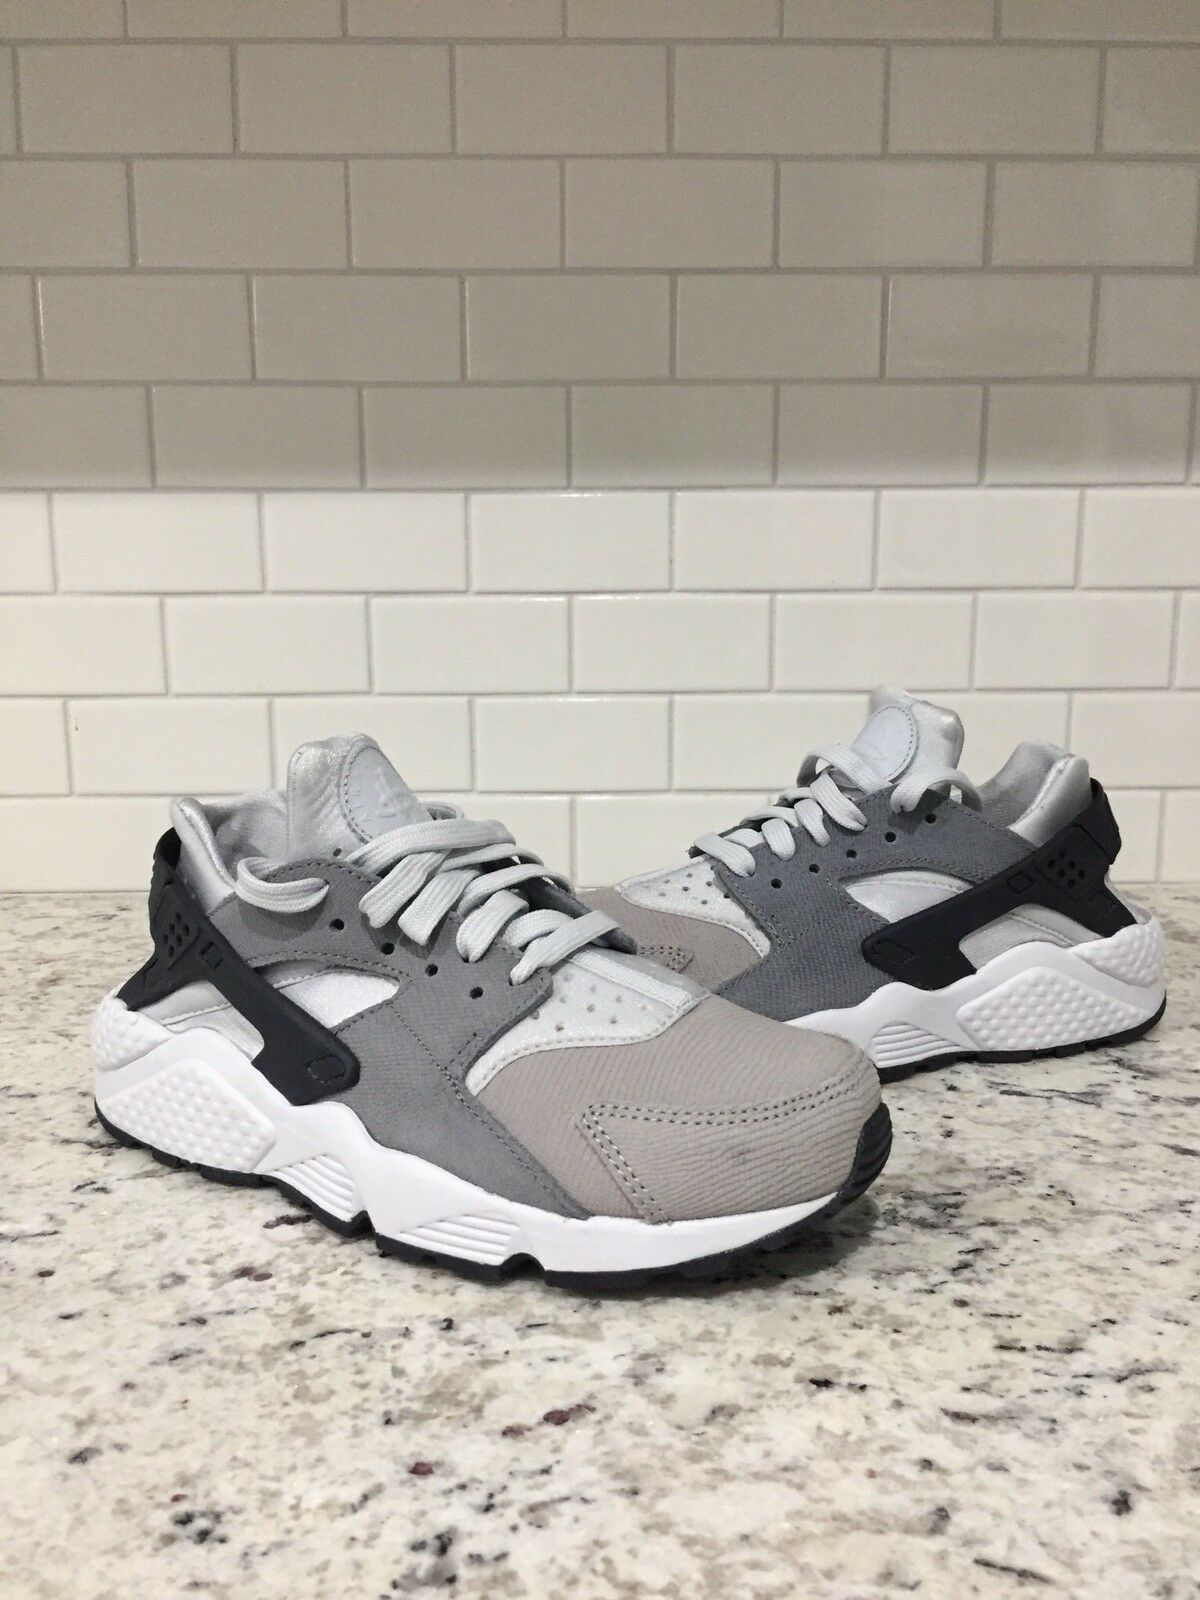 NIKE AIR HUARACHE RUN PRM PREMIUM PURE PLATINUM-GREY SZ 7 [683818-009]